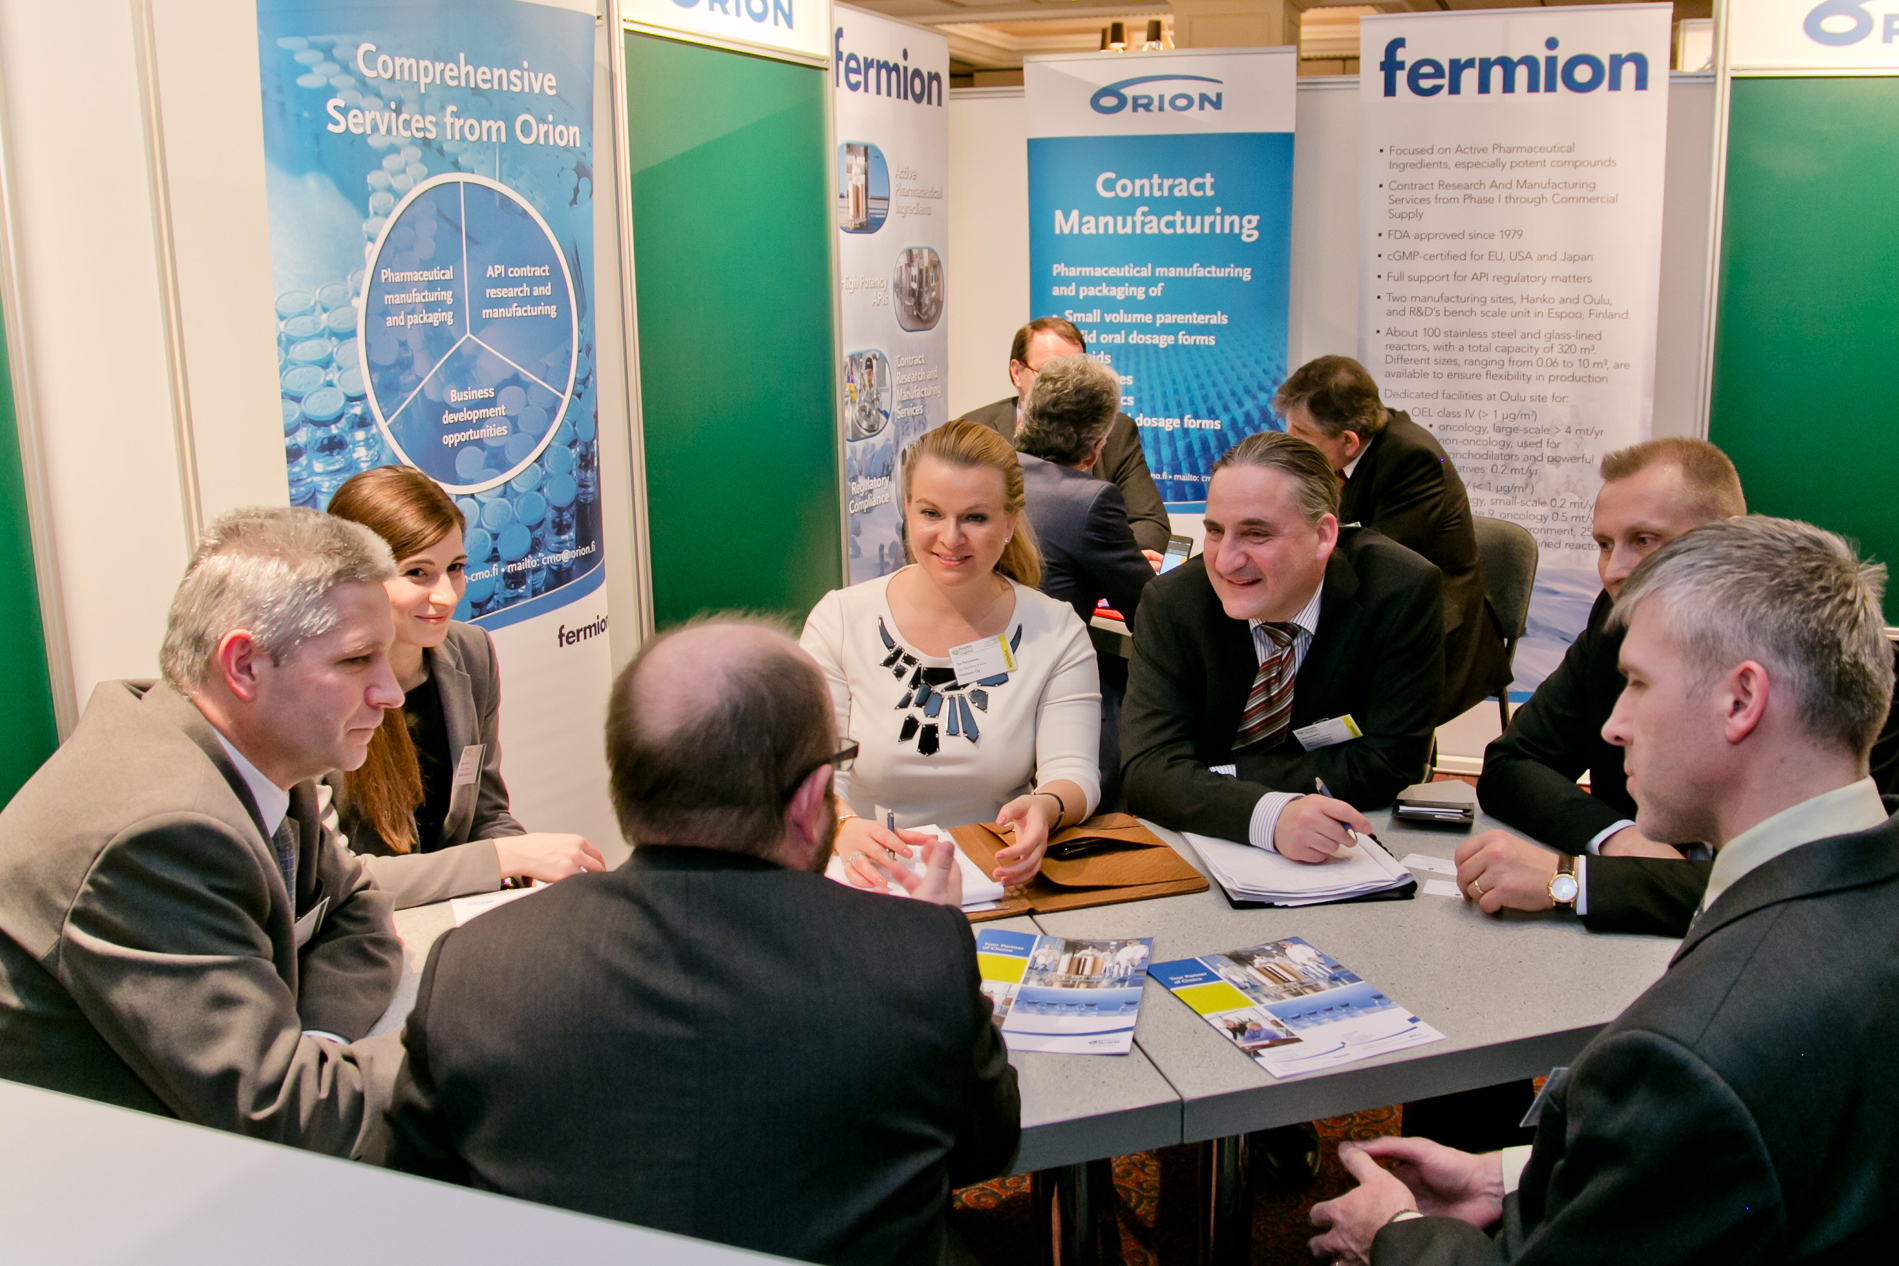 One-to-one meeting with Orion & Fermion at PHARM Connect 2015